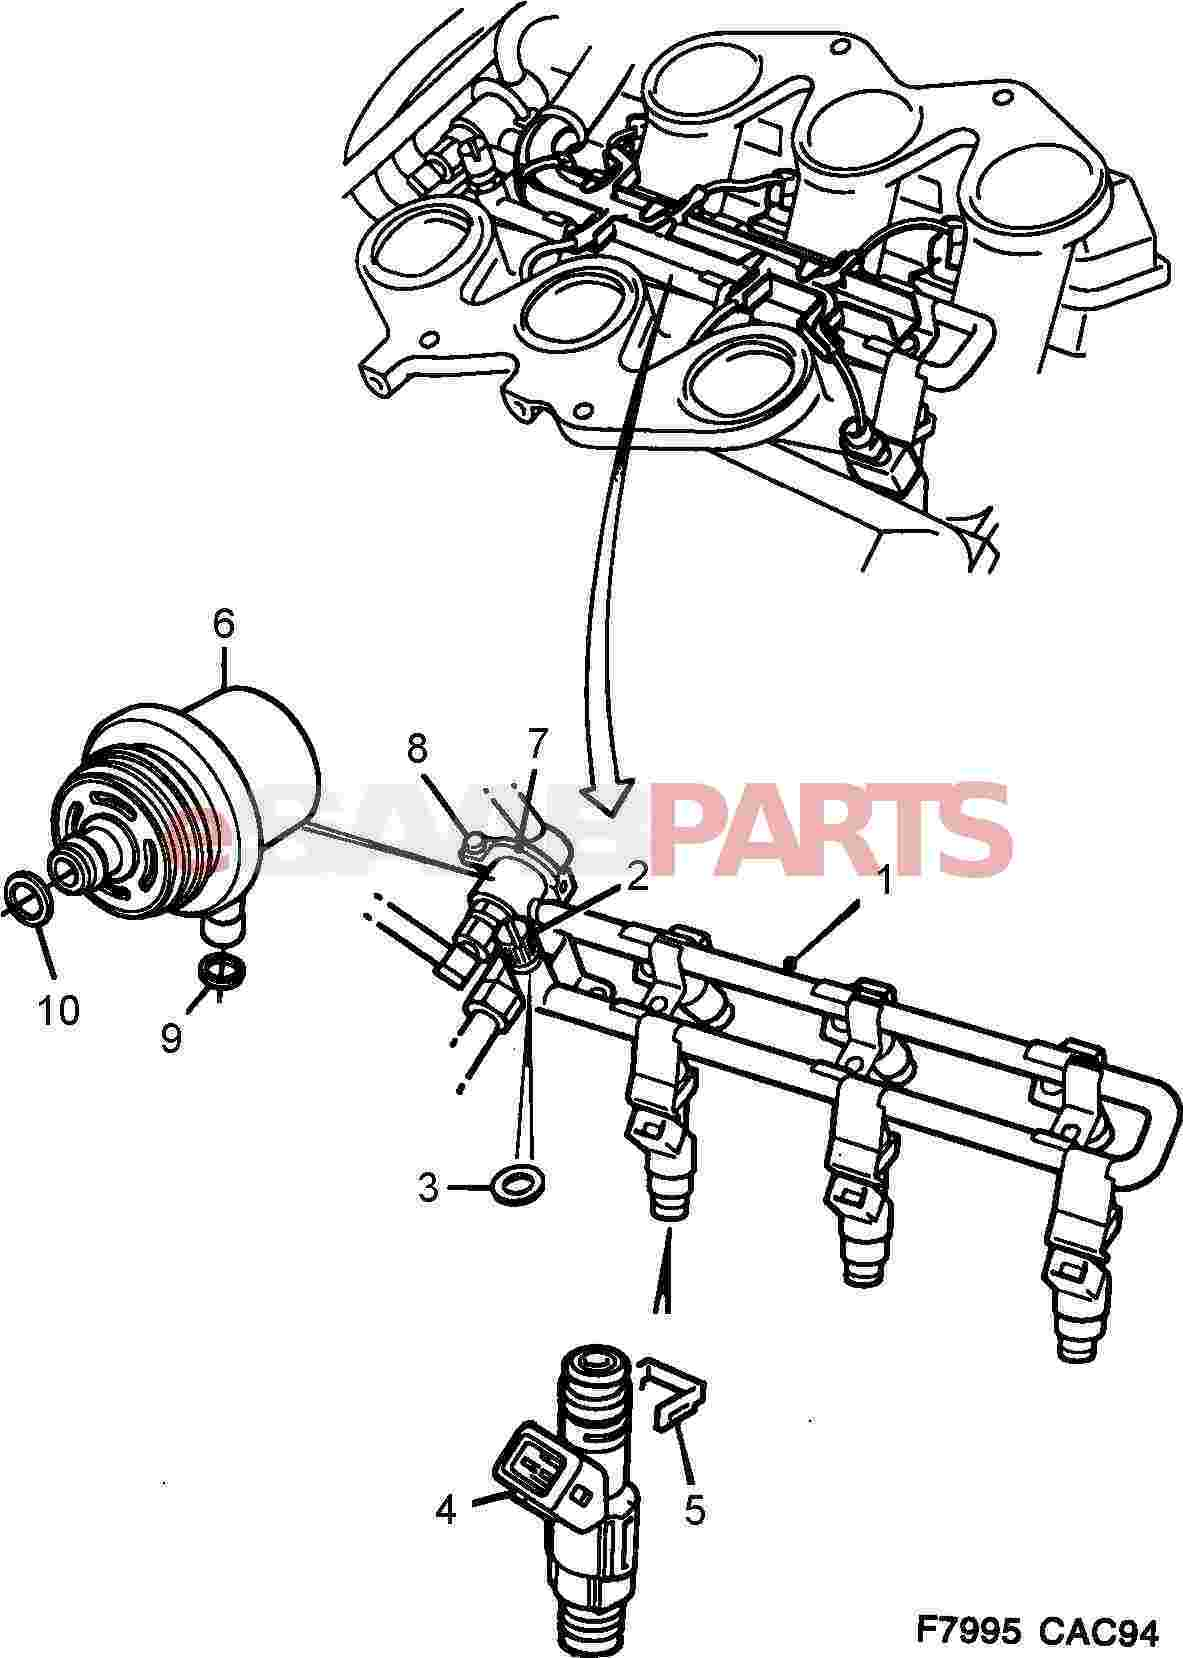 1999 Saab 9 3 Amplifier Wiring. Saab. Auto Fuse Box Diagram